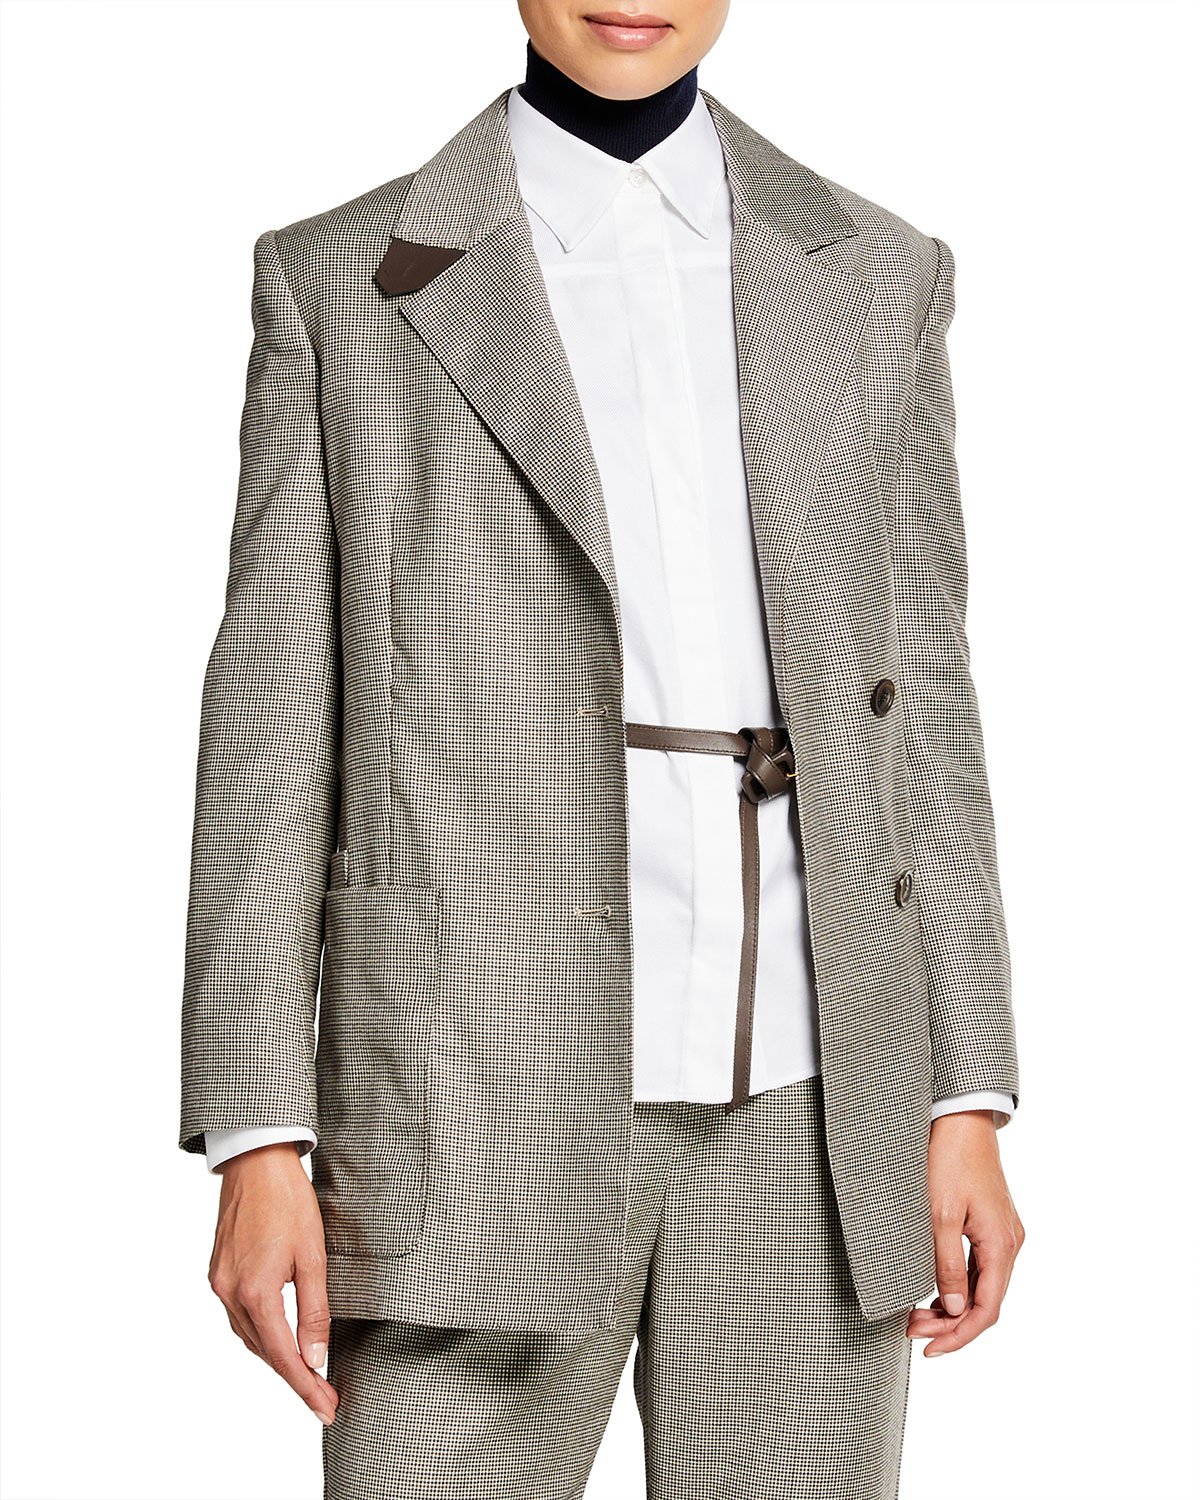 Tiny Check Wool Jacket with Leather Belt